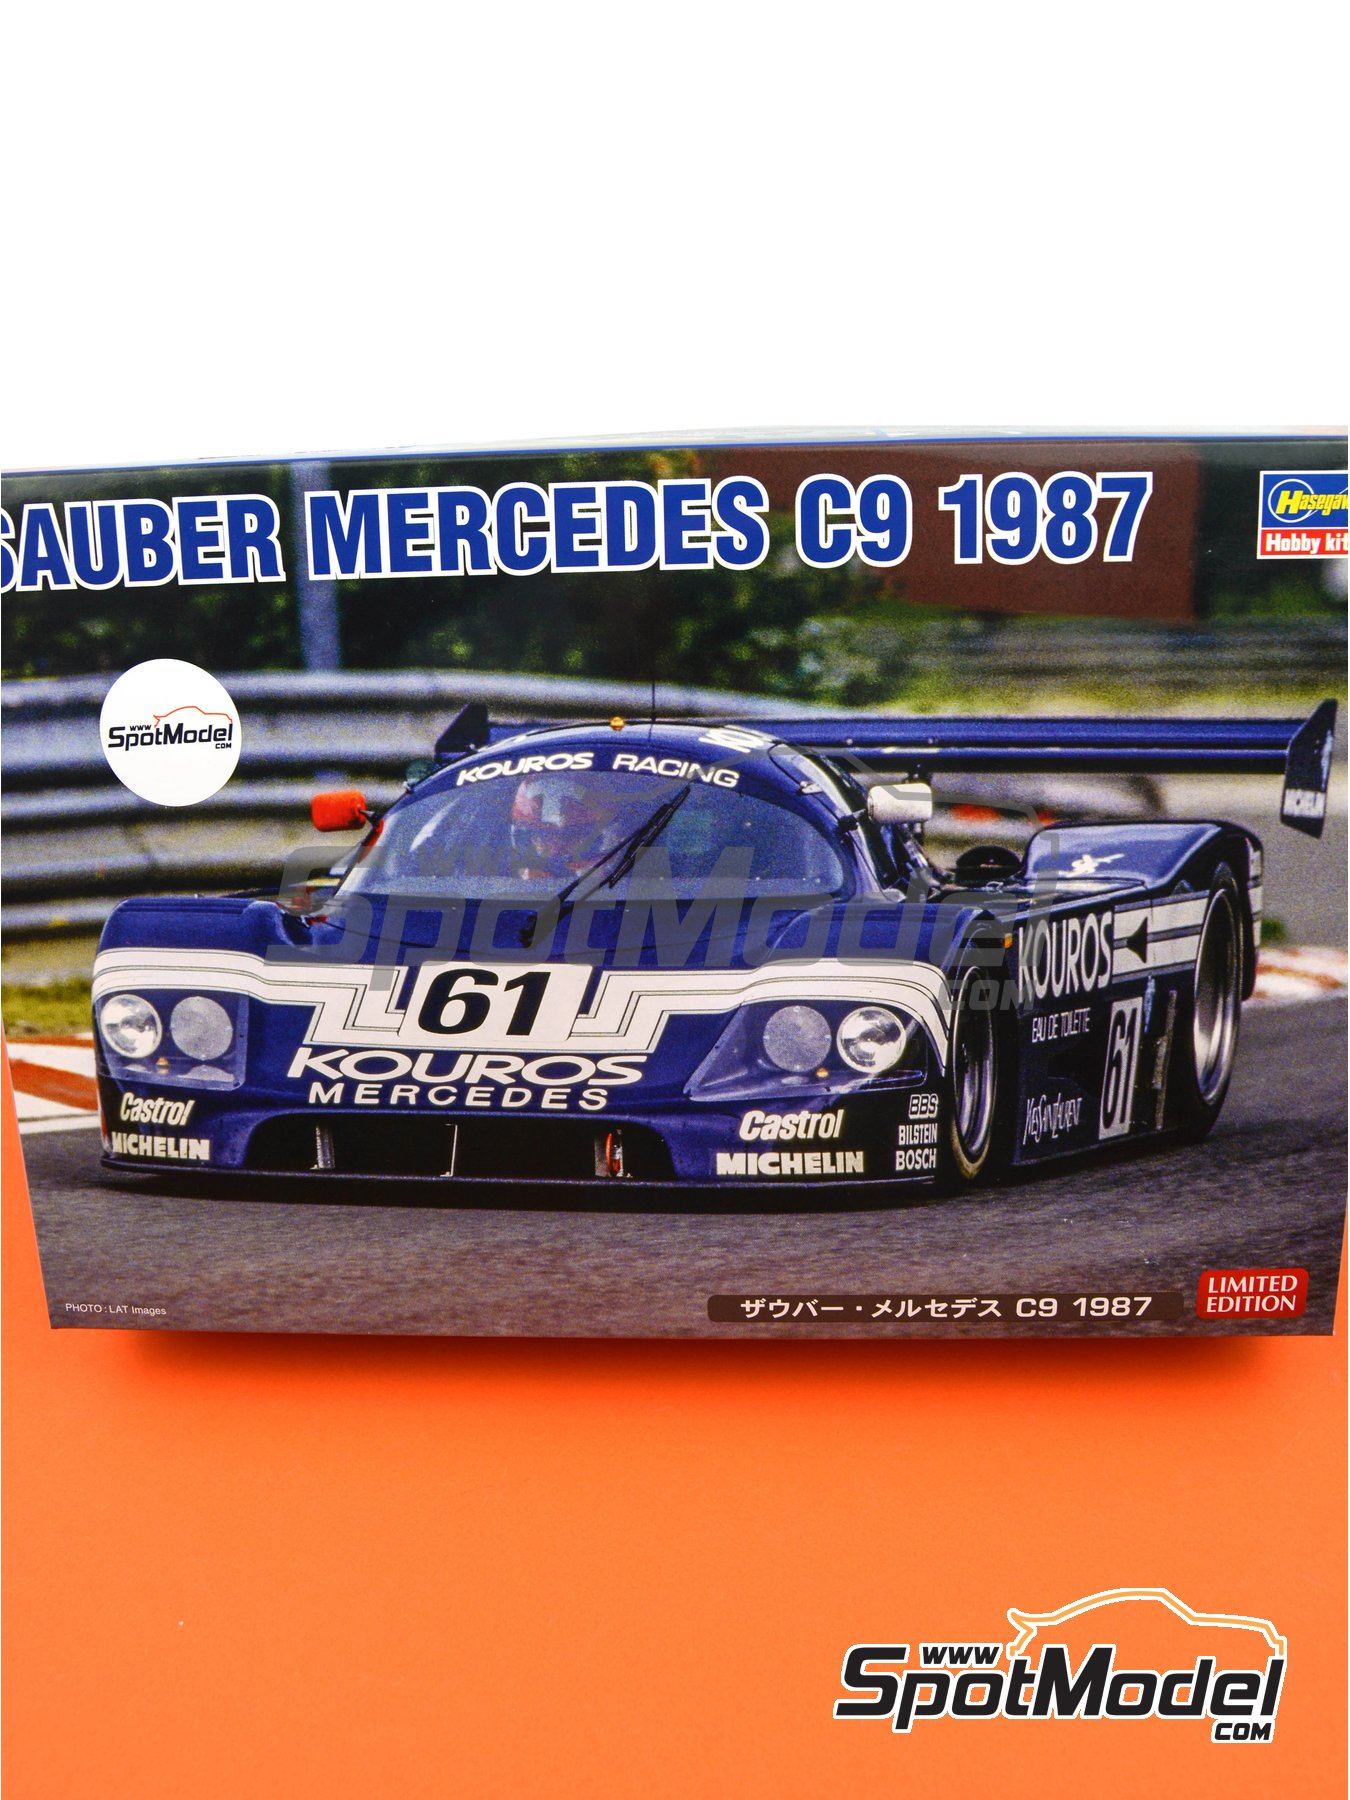 Sauber Mercedes C9 Kouros - 24 Hours Le Mans 1987 | Model car kit in 1/24 scale manufactured by Hasegawa (ref.20373) image